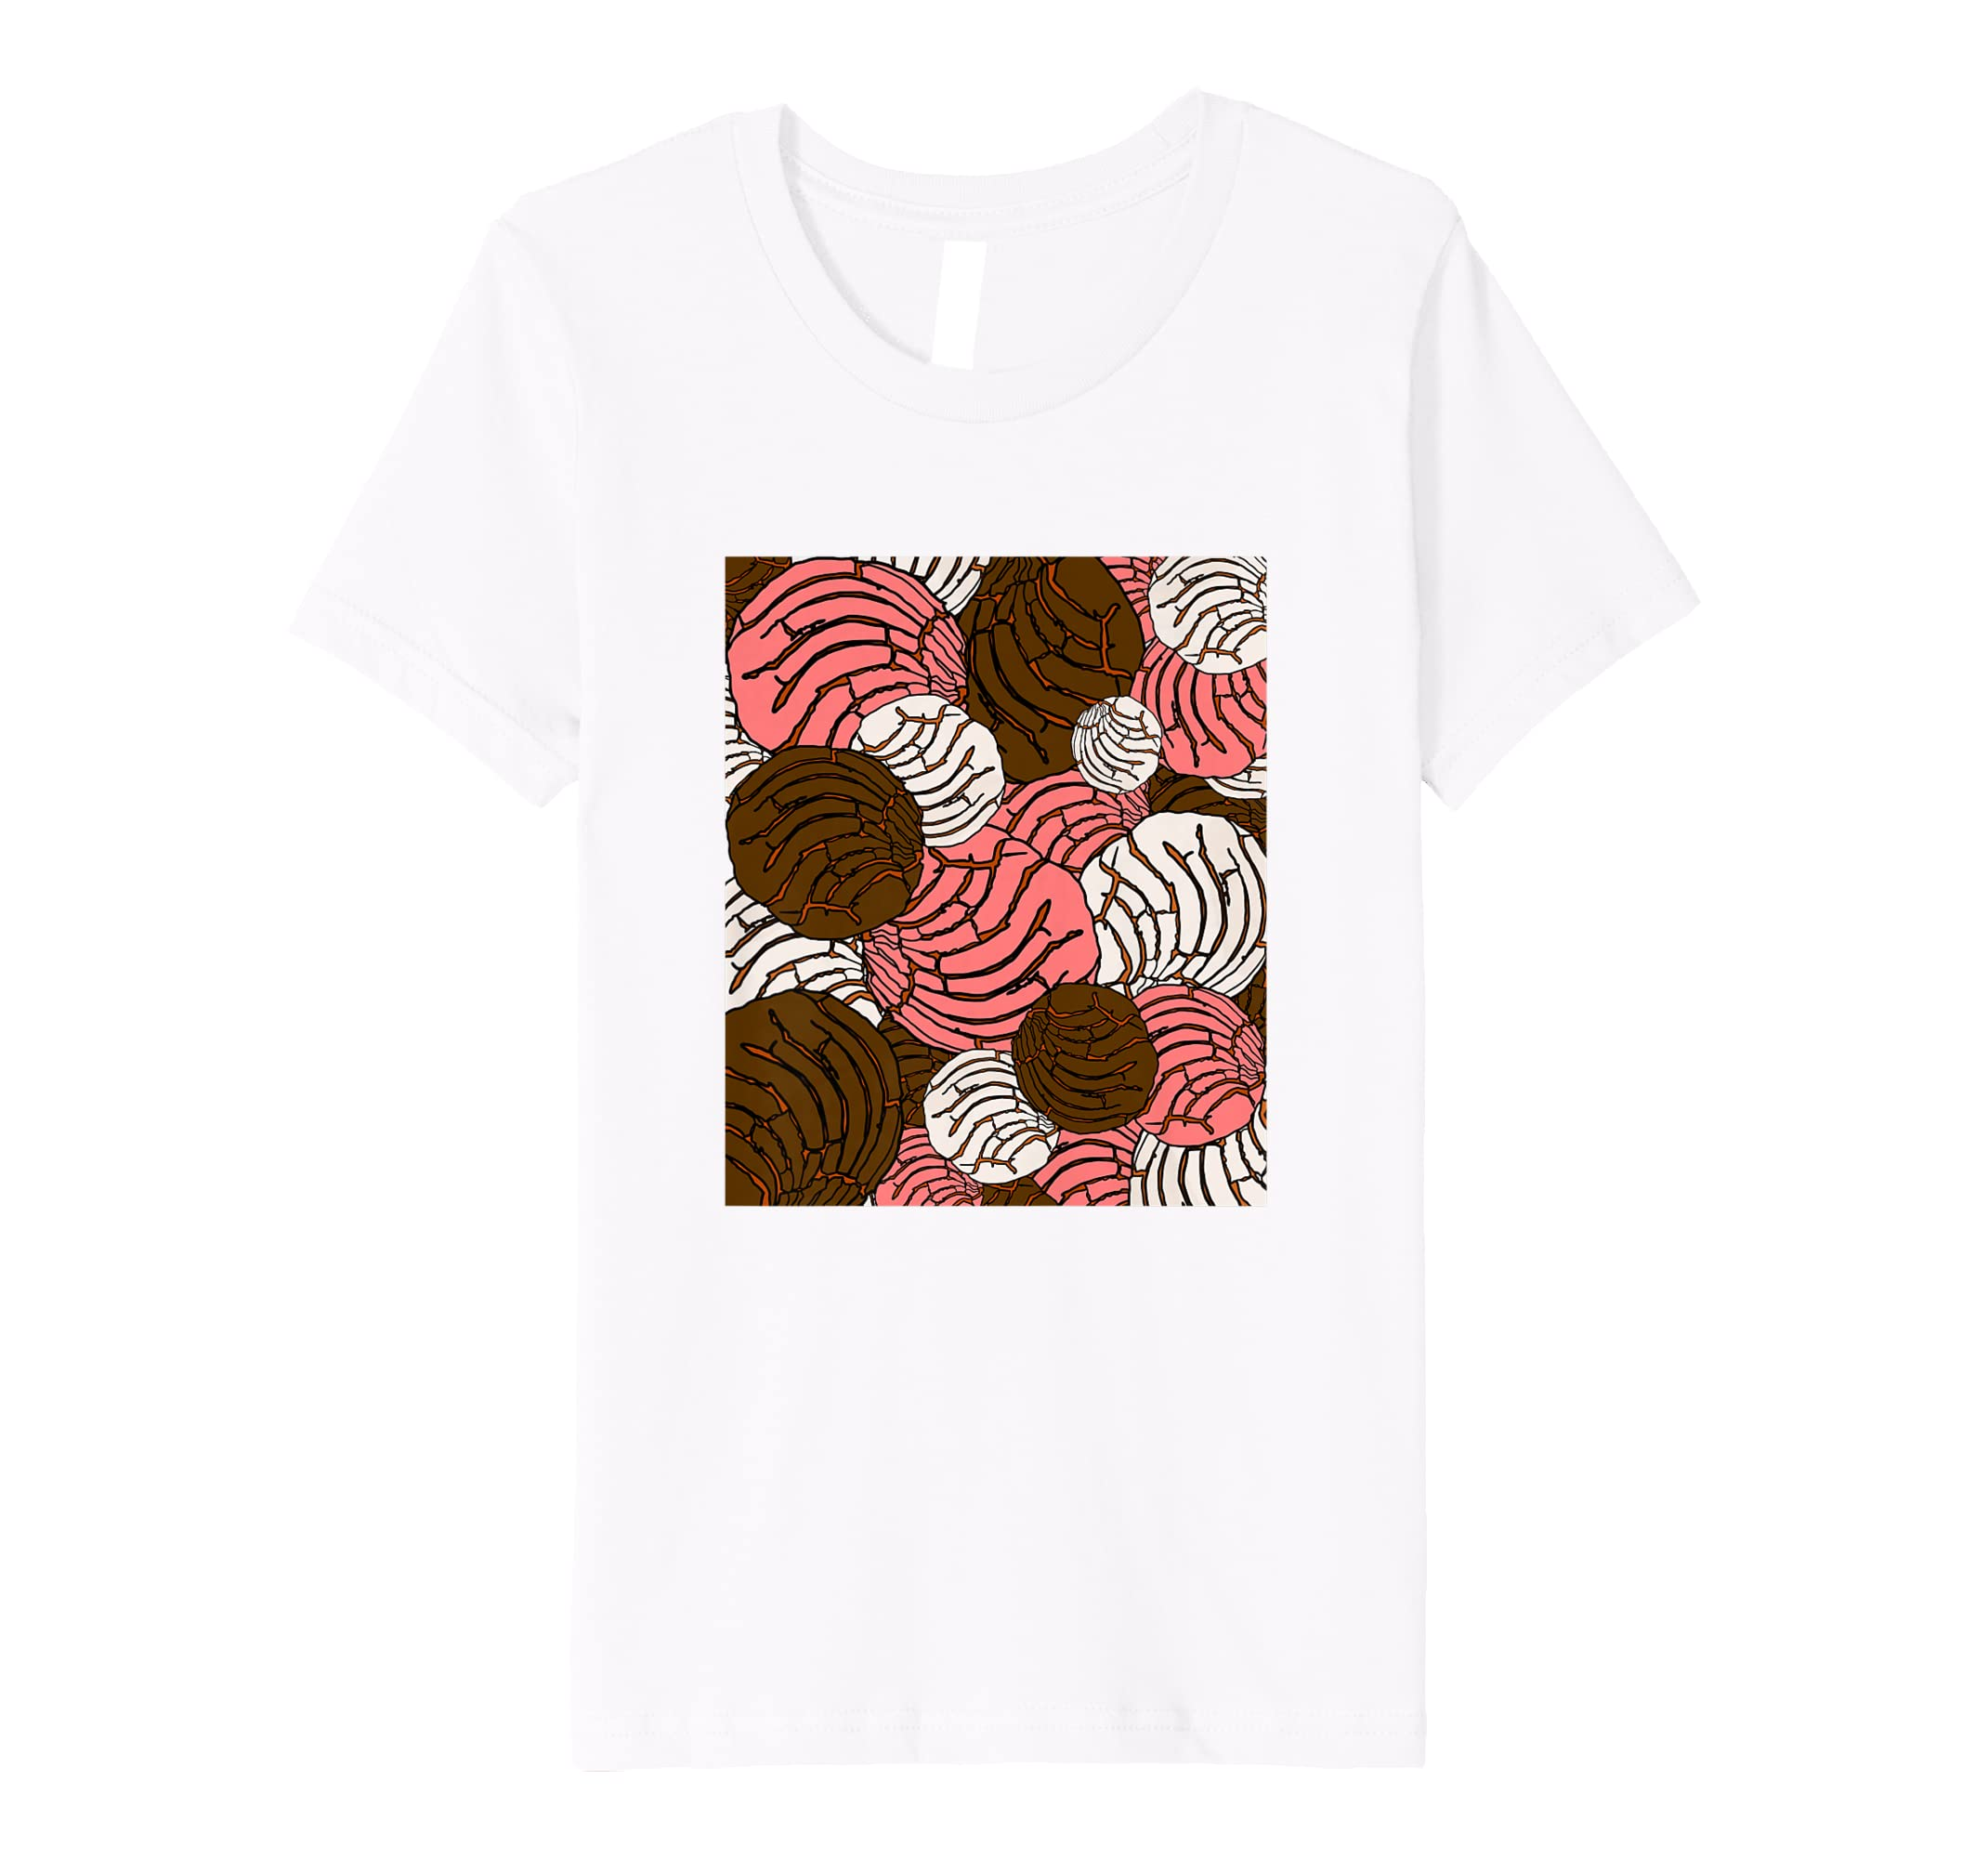 Amazon.com: Concha Mexican Bread Bakery Sweets Pan Dulce T-Shirt: Clothing